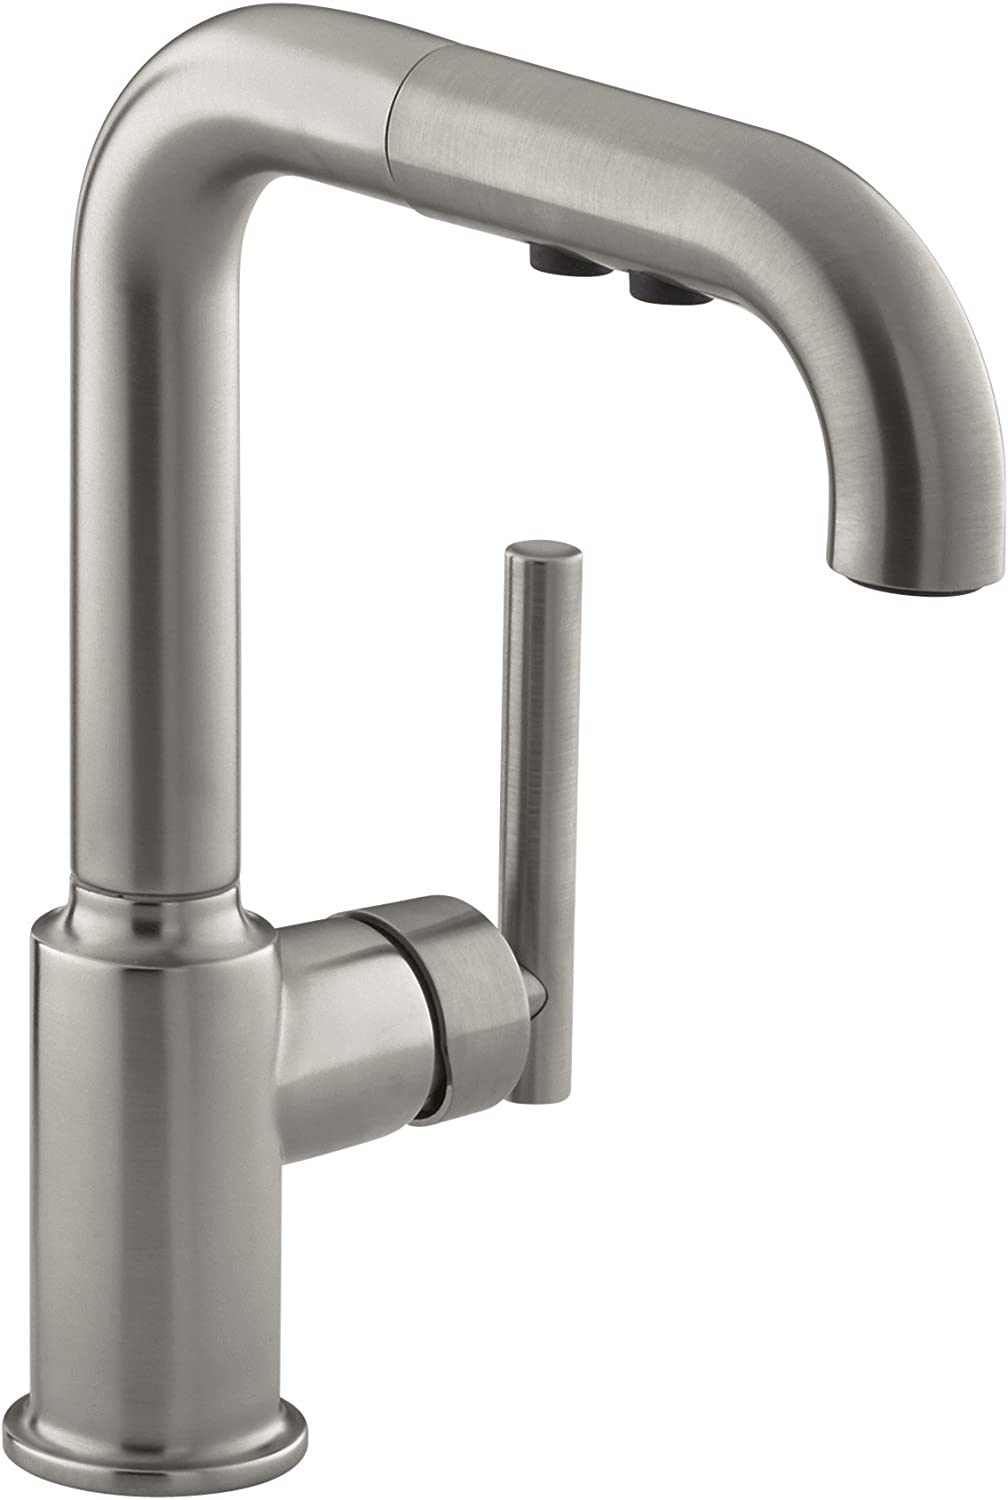 KOHLER K-7506-VS Purist Secondary Pullout, Vibrant Stainless